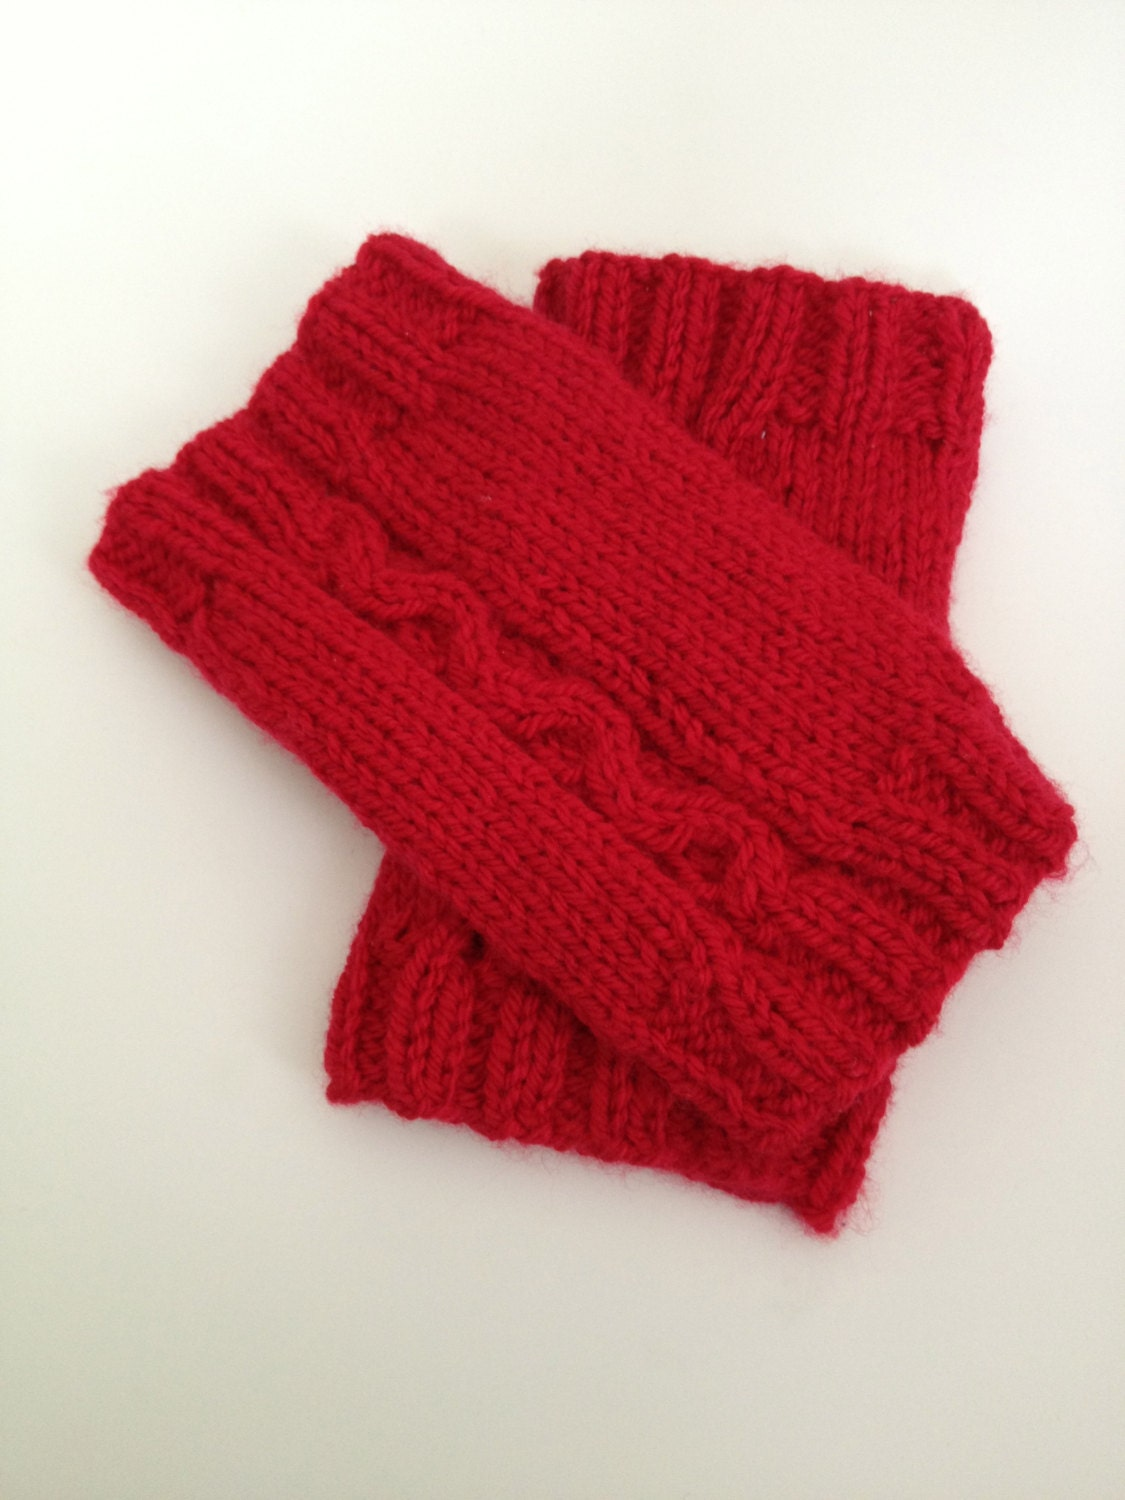 Cable Leg Warmers Knitting Pattern : Cabled Leg Warmer Knitting Pattern, PDF, Sizes from 1 to 4yrs, instant downlo...